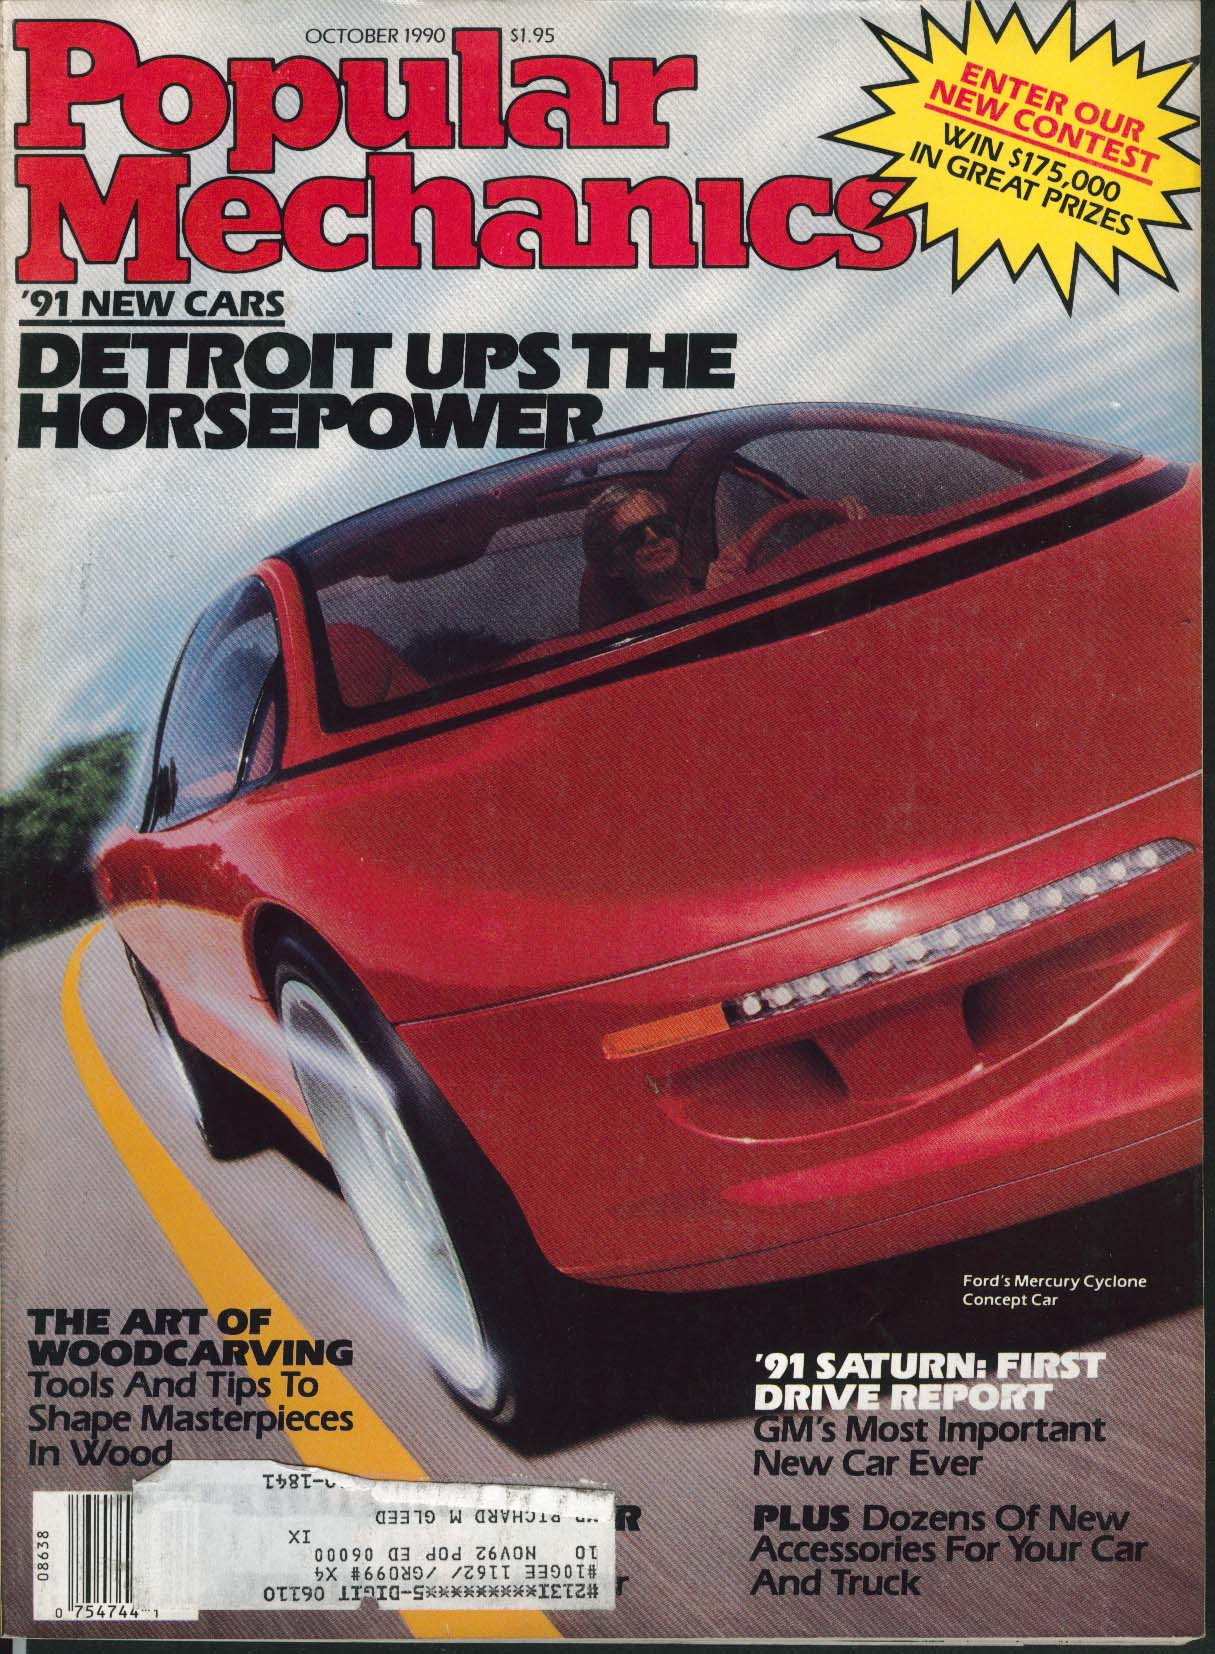 Image for POPULAR MECHANICS Ford Mercury Cyclone Concept 1991 Saturn test drive ++ 10 1990